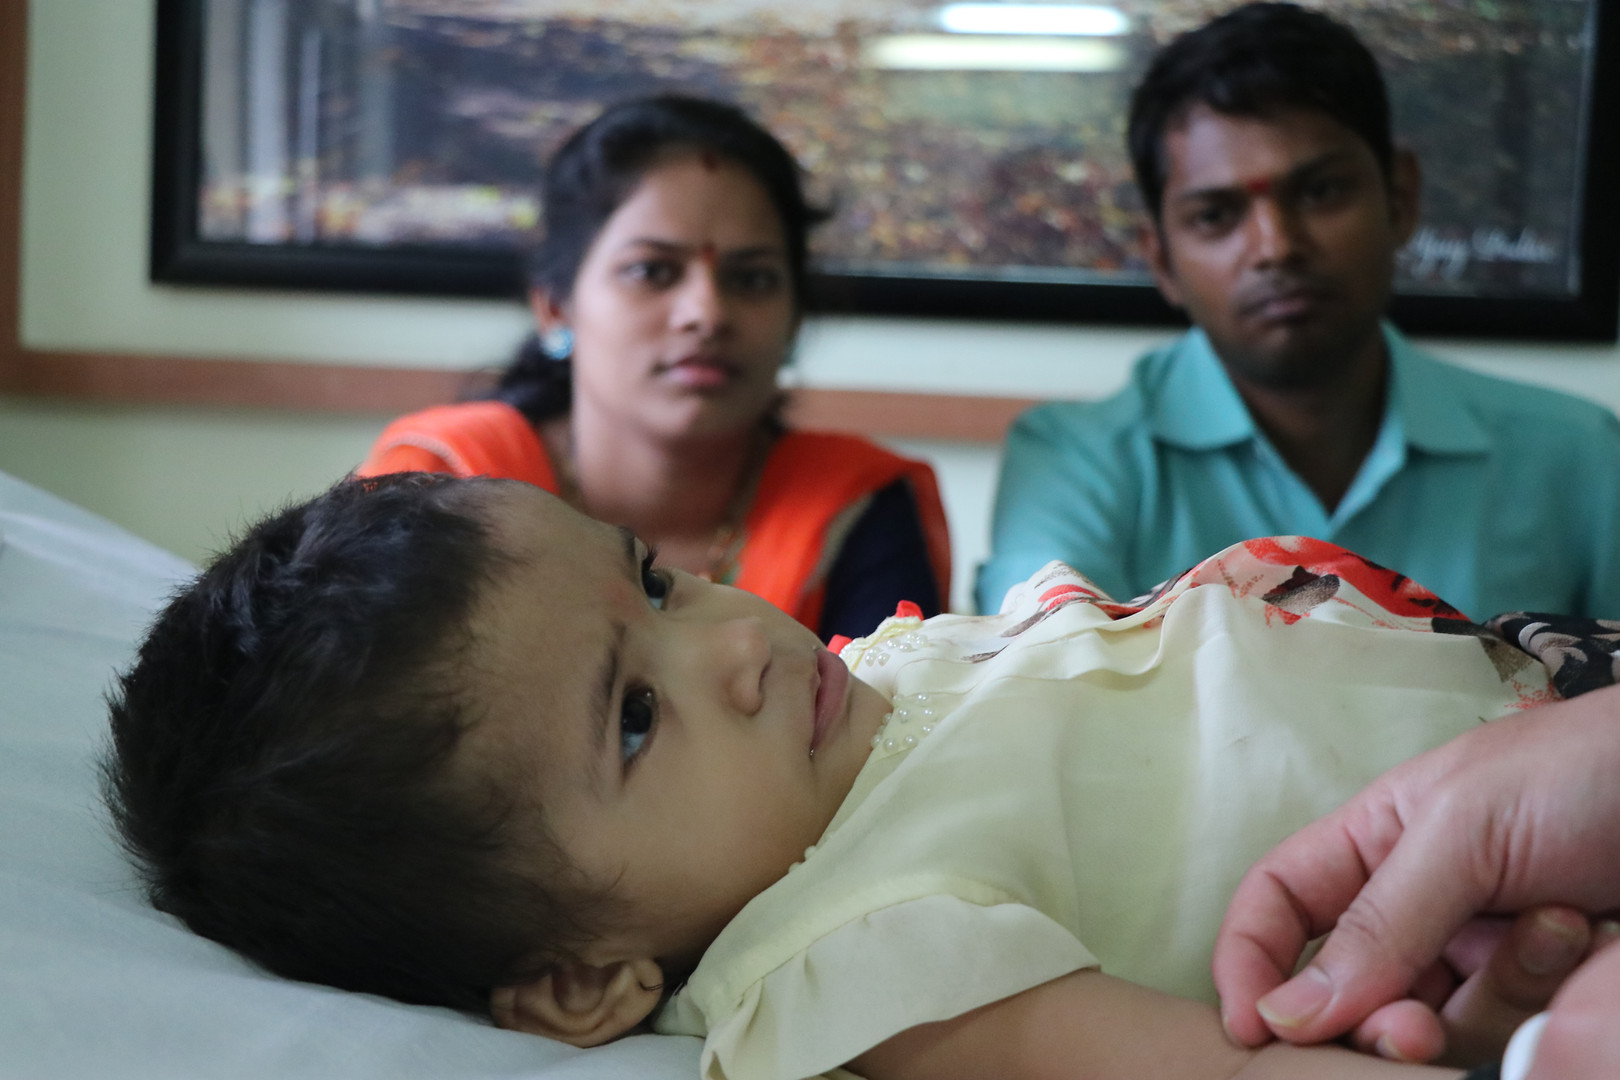 Swara.JPG financial support to the poor under-privileged children in the hospital.